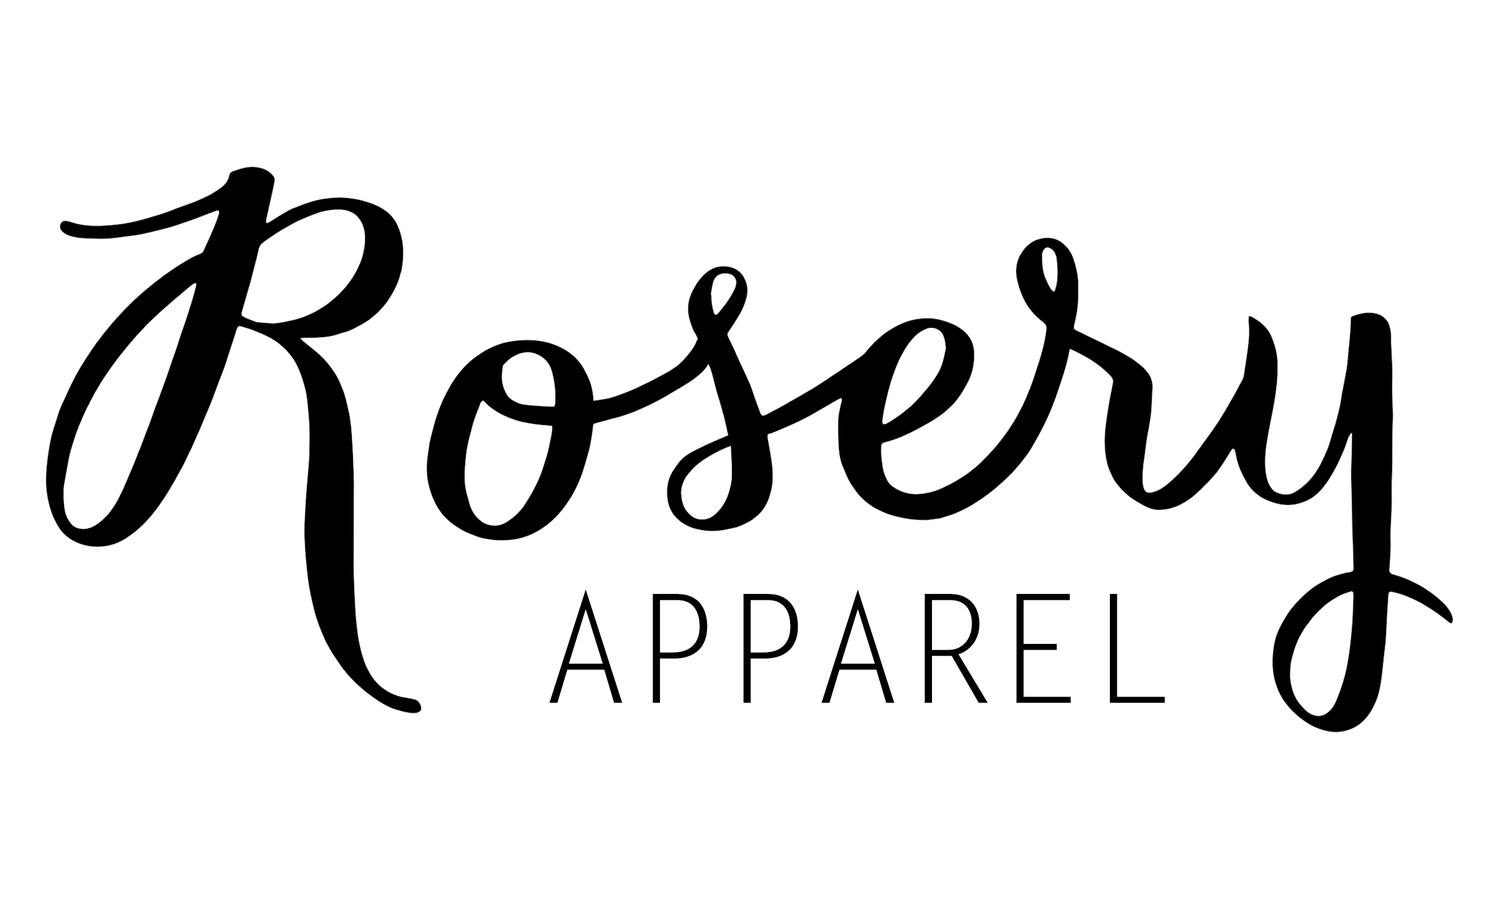 Rosery Apparel